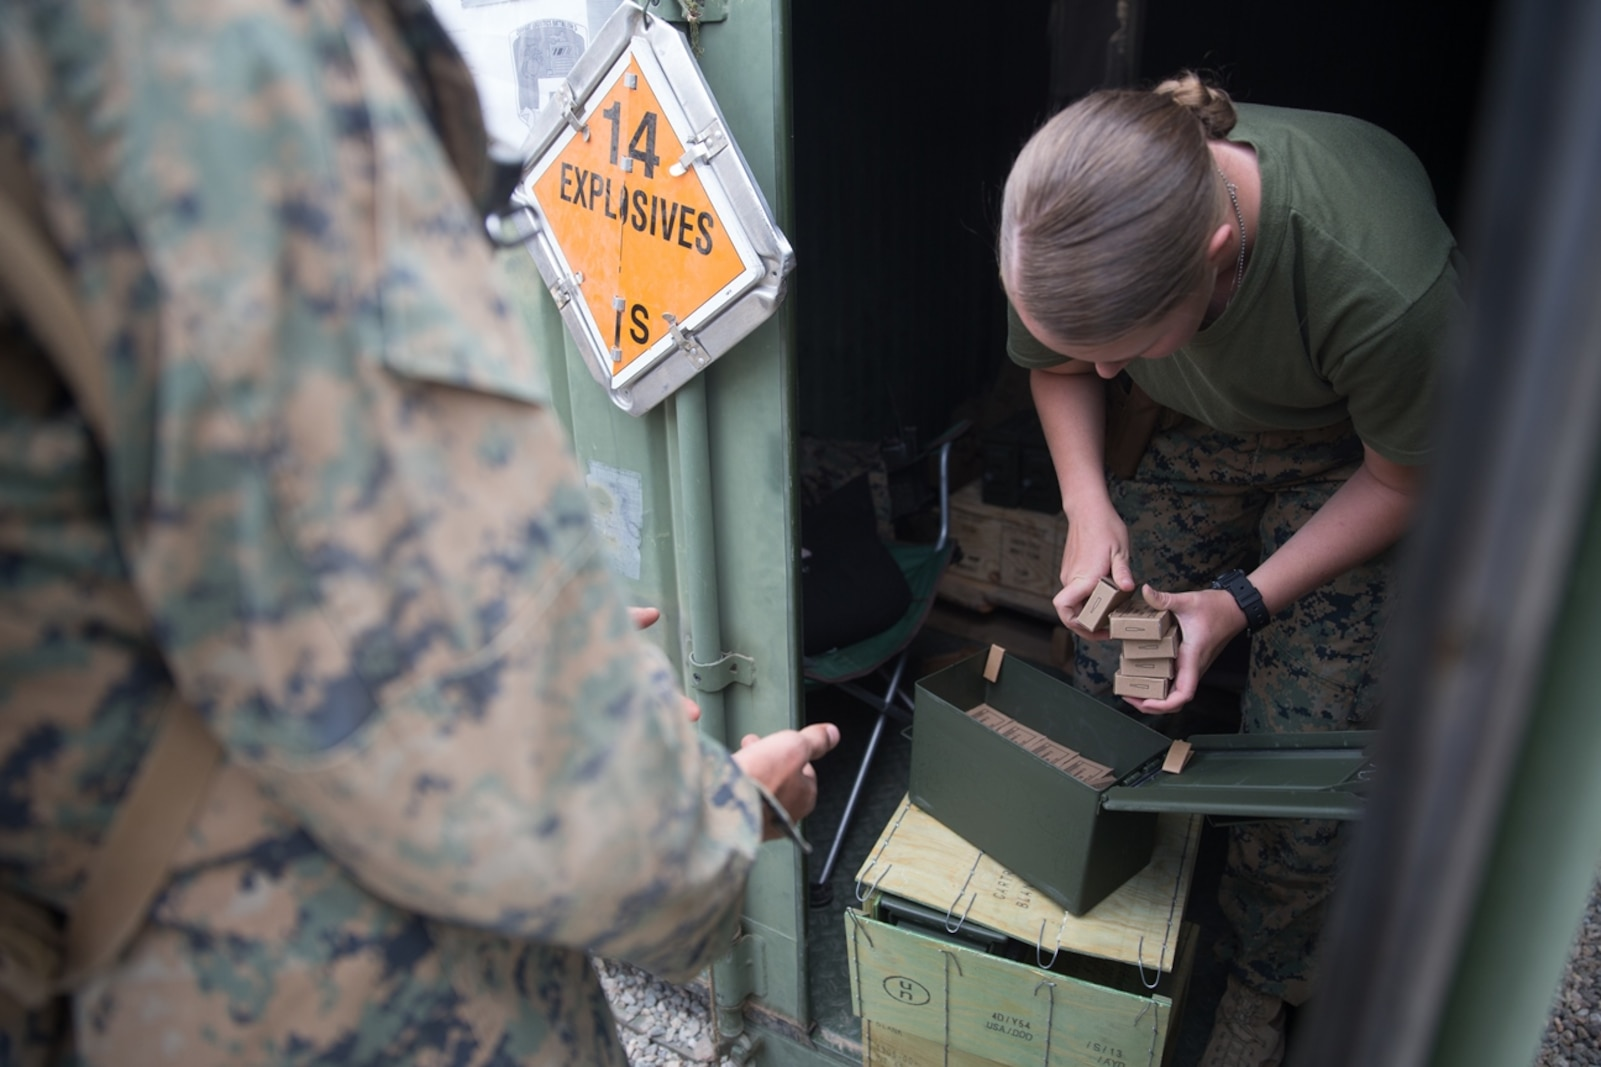 U.S. Marine Pfc. Olivia Rutherford, an ammo technician with Combat Logistics Battalion 5 (CLB-5), Combat Logistics Regiment 1, 1st Marine Logistics Group, counts out ammunition during Mountain Training Exercise 4-17 at Mountain Warfare Training Center, August 4, 2017. Blanks were handed to Marines to be used on the convoys in case of simulated enemy contacts. Throughout the training evolution, Marines with CLB-5 received over 9000 blank ammunition for the M16A4 service rifle for practical experience and utilizing their weapons. (U.S. Marine Corps photo by Lance Cpl. Timothy Shoemaker)